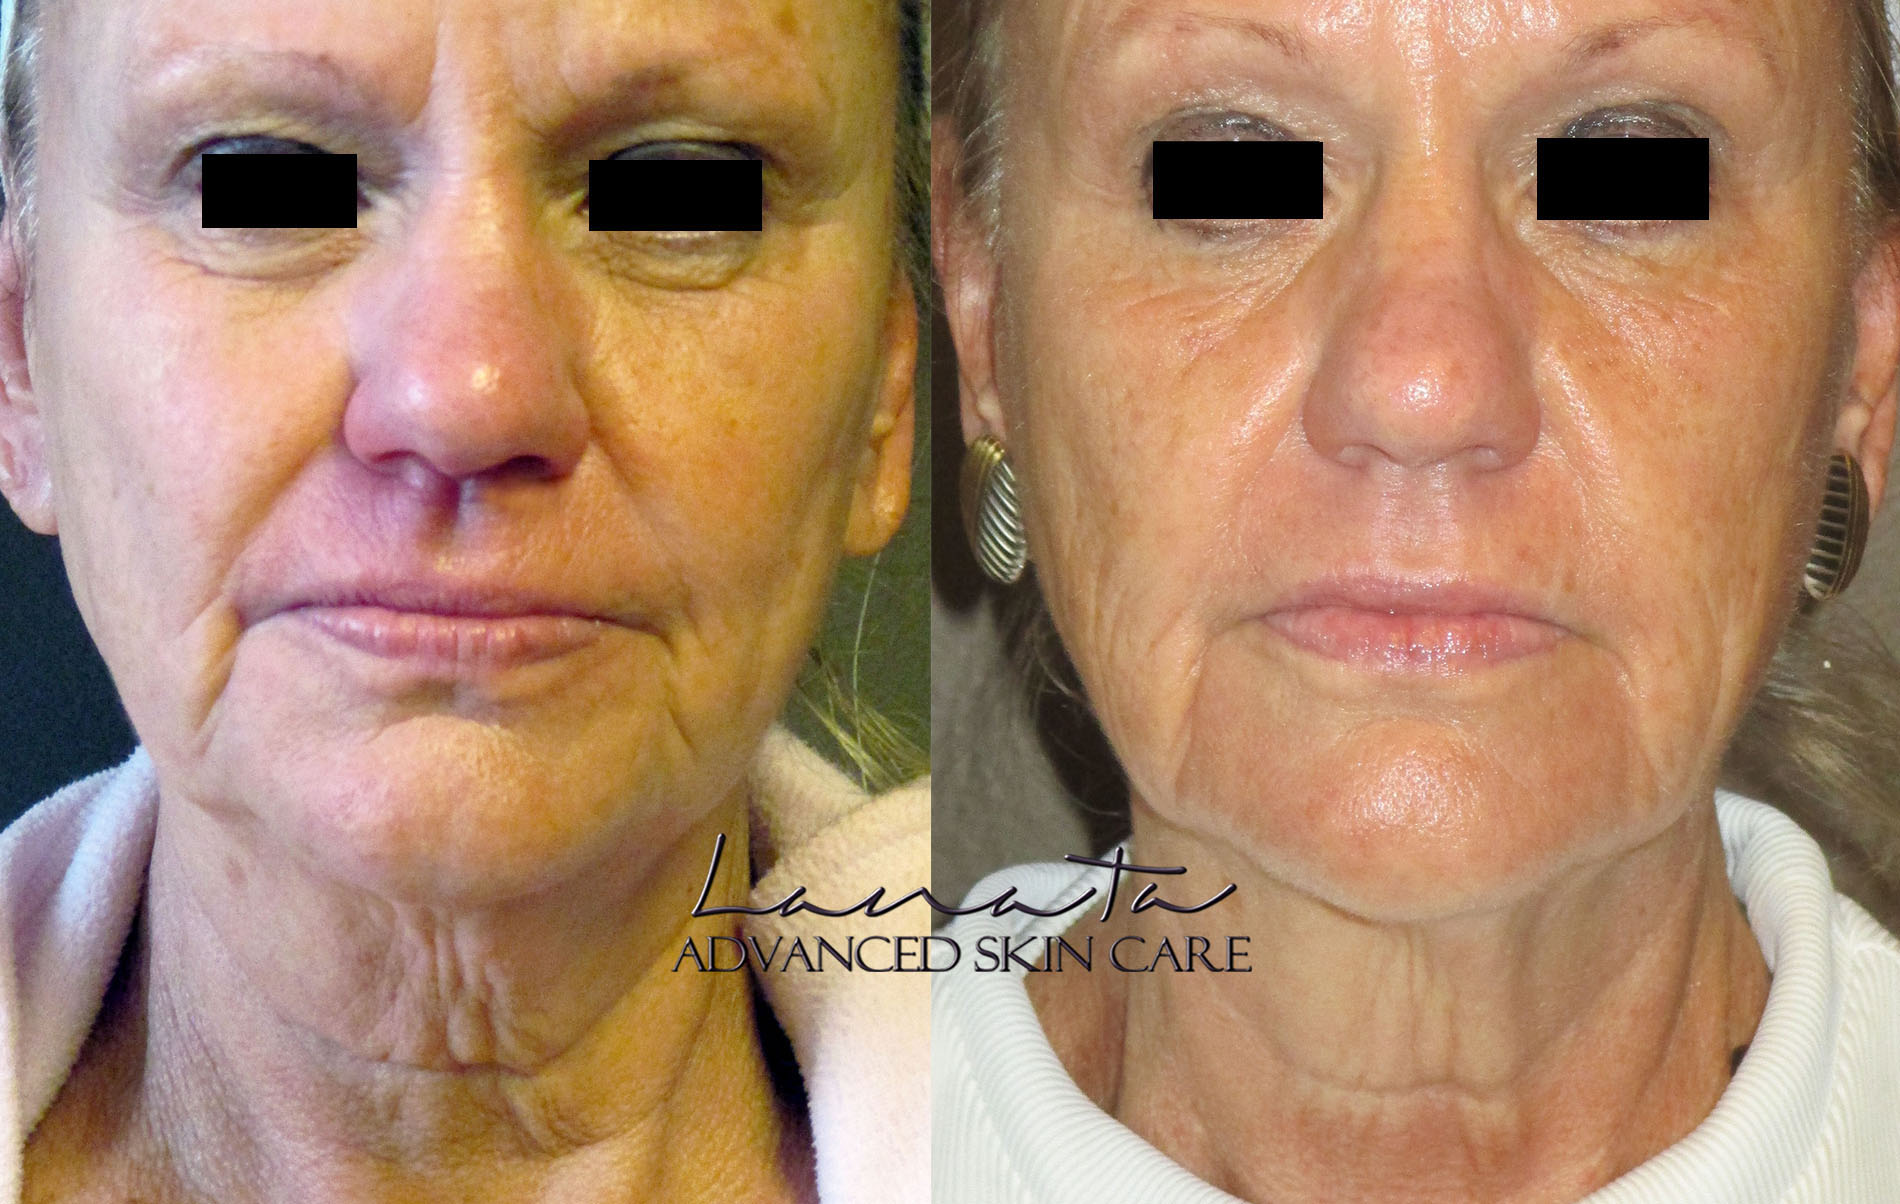 lanata advanced skincare denver microcurrent before after 5